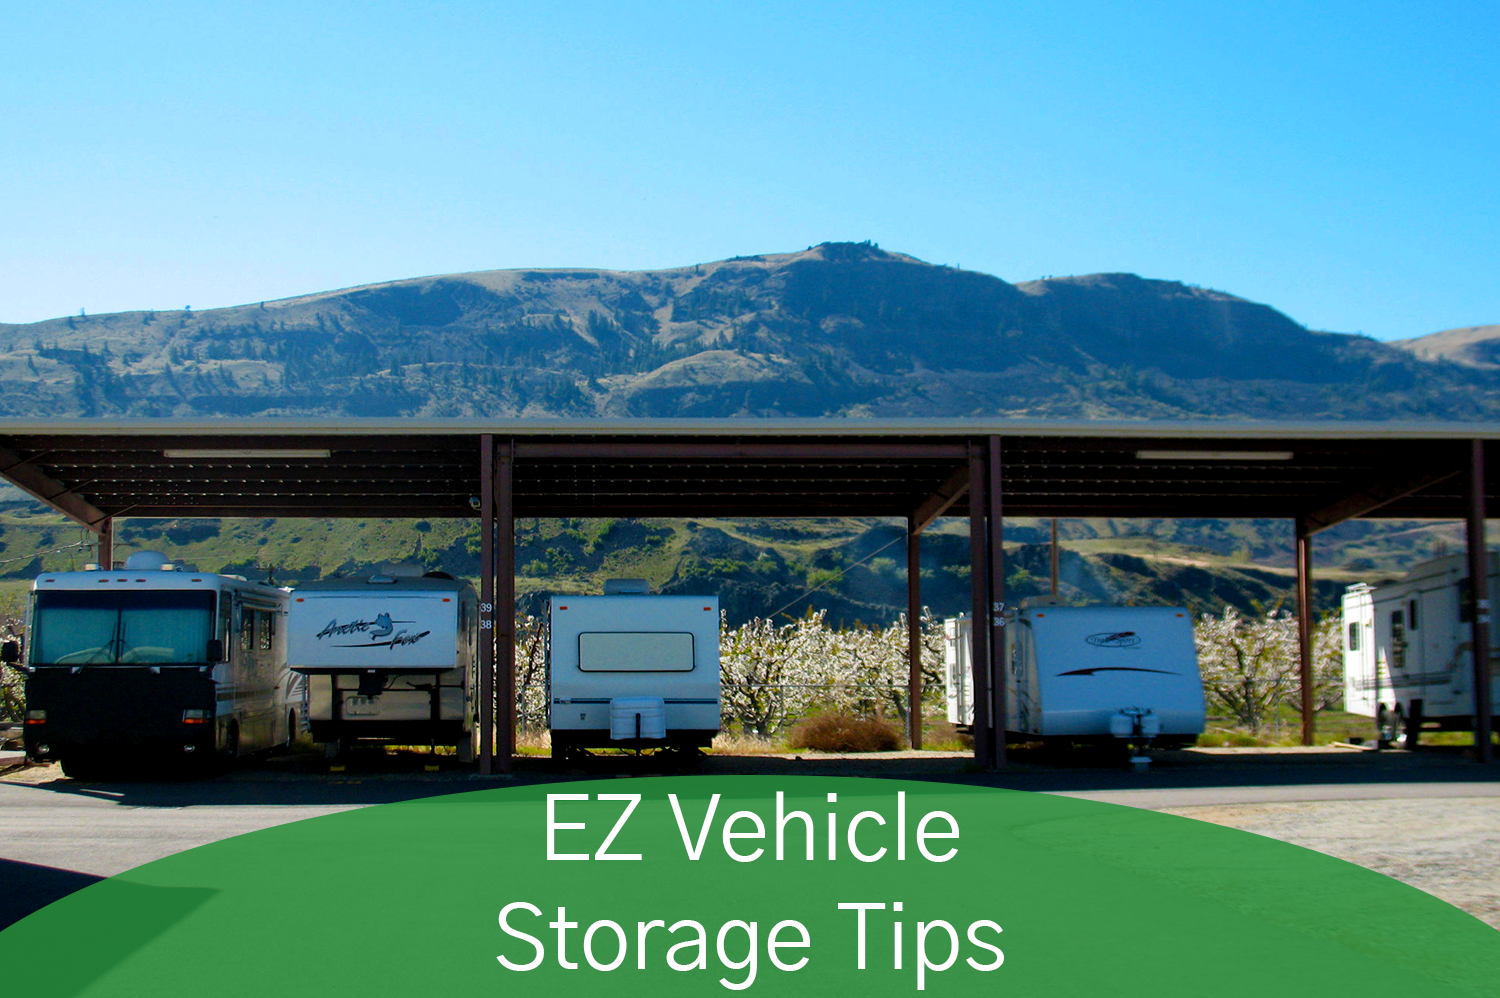 Ez Access Storage outdoor covered vehicle storage.